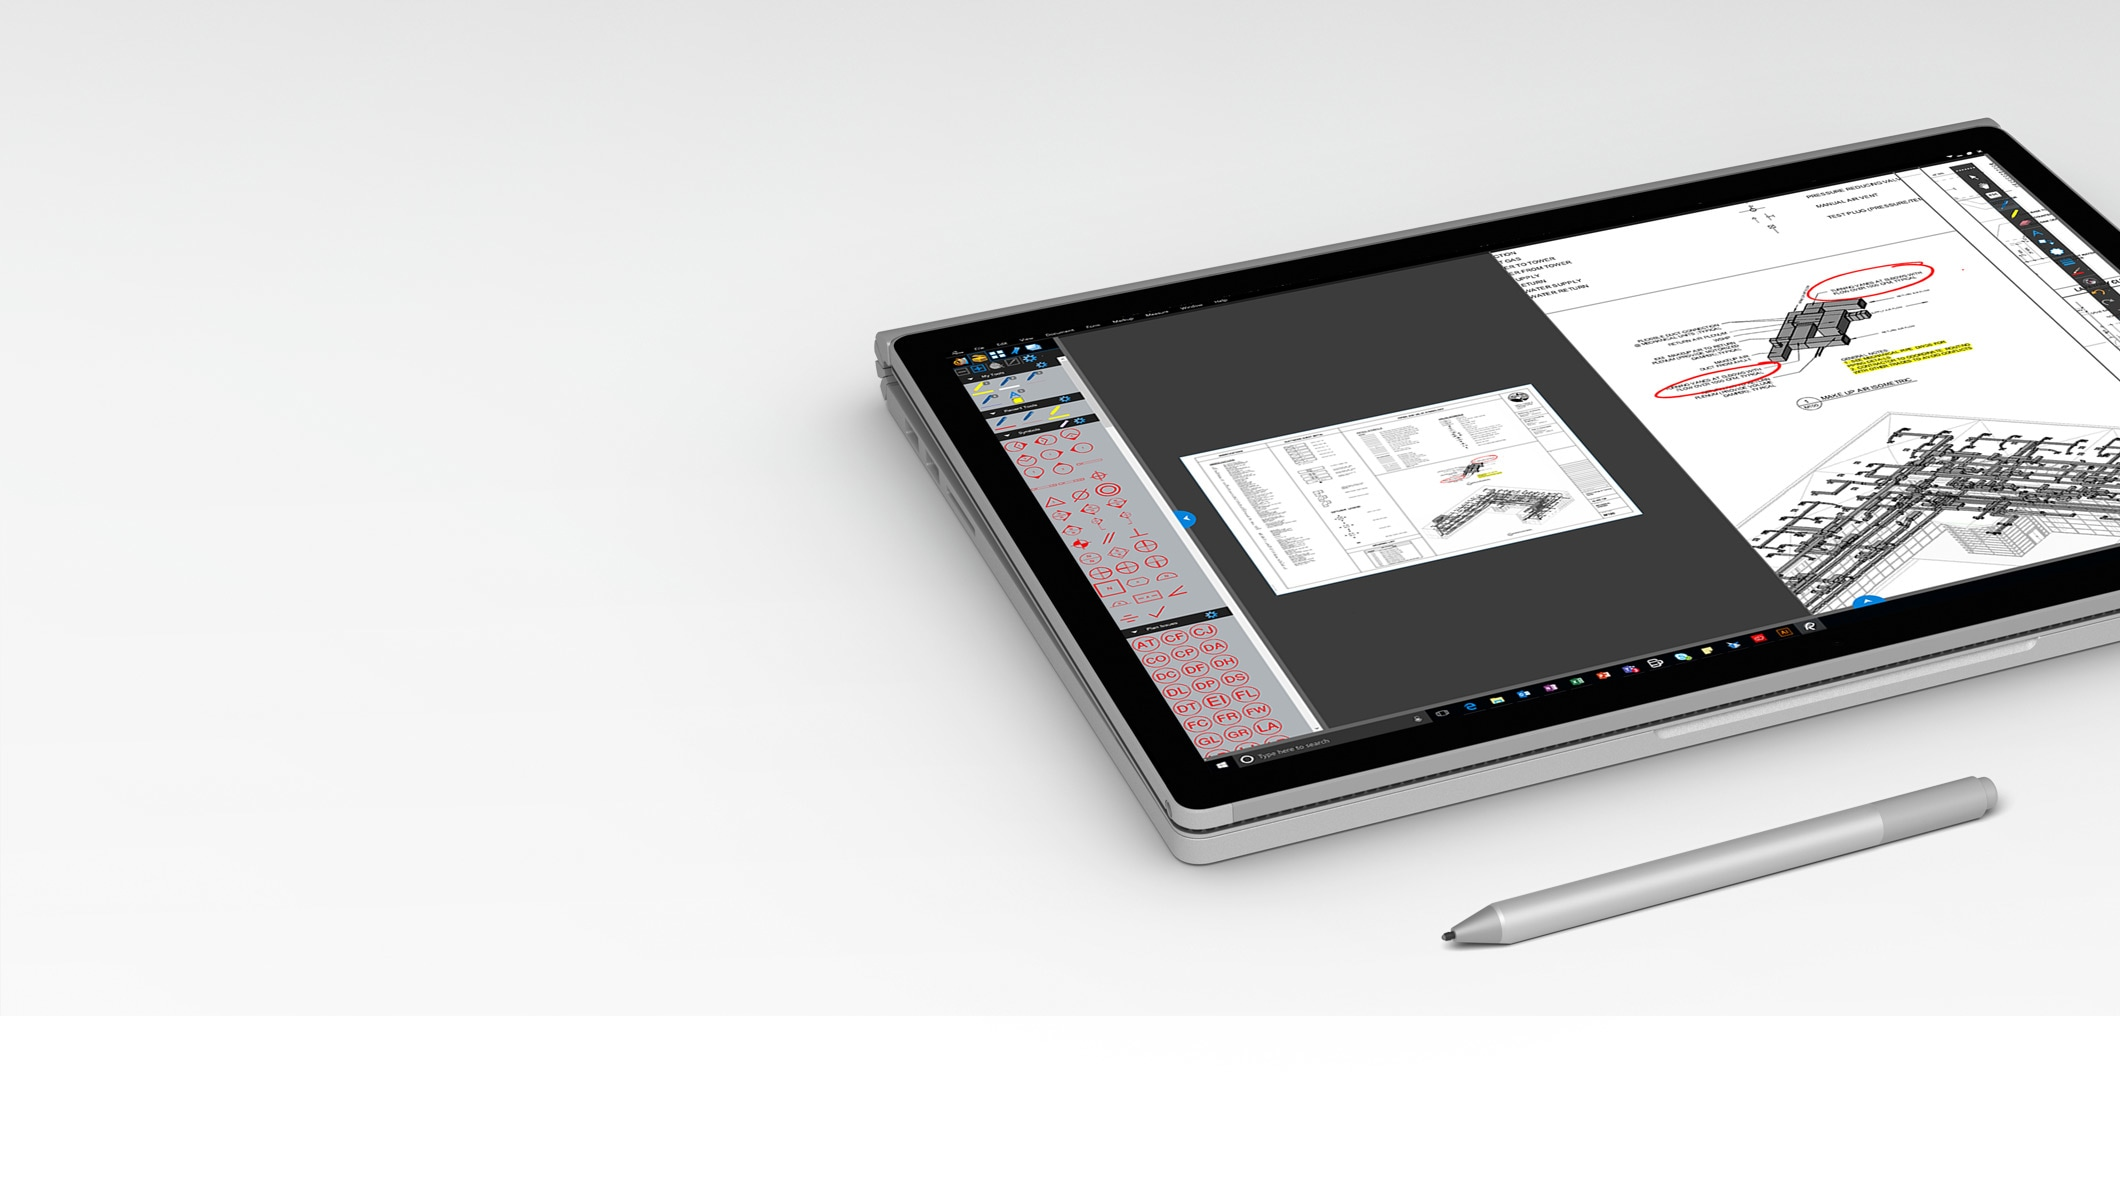 Surface Book 2 in Studio Mode